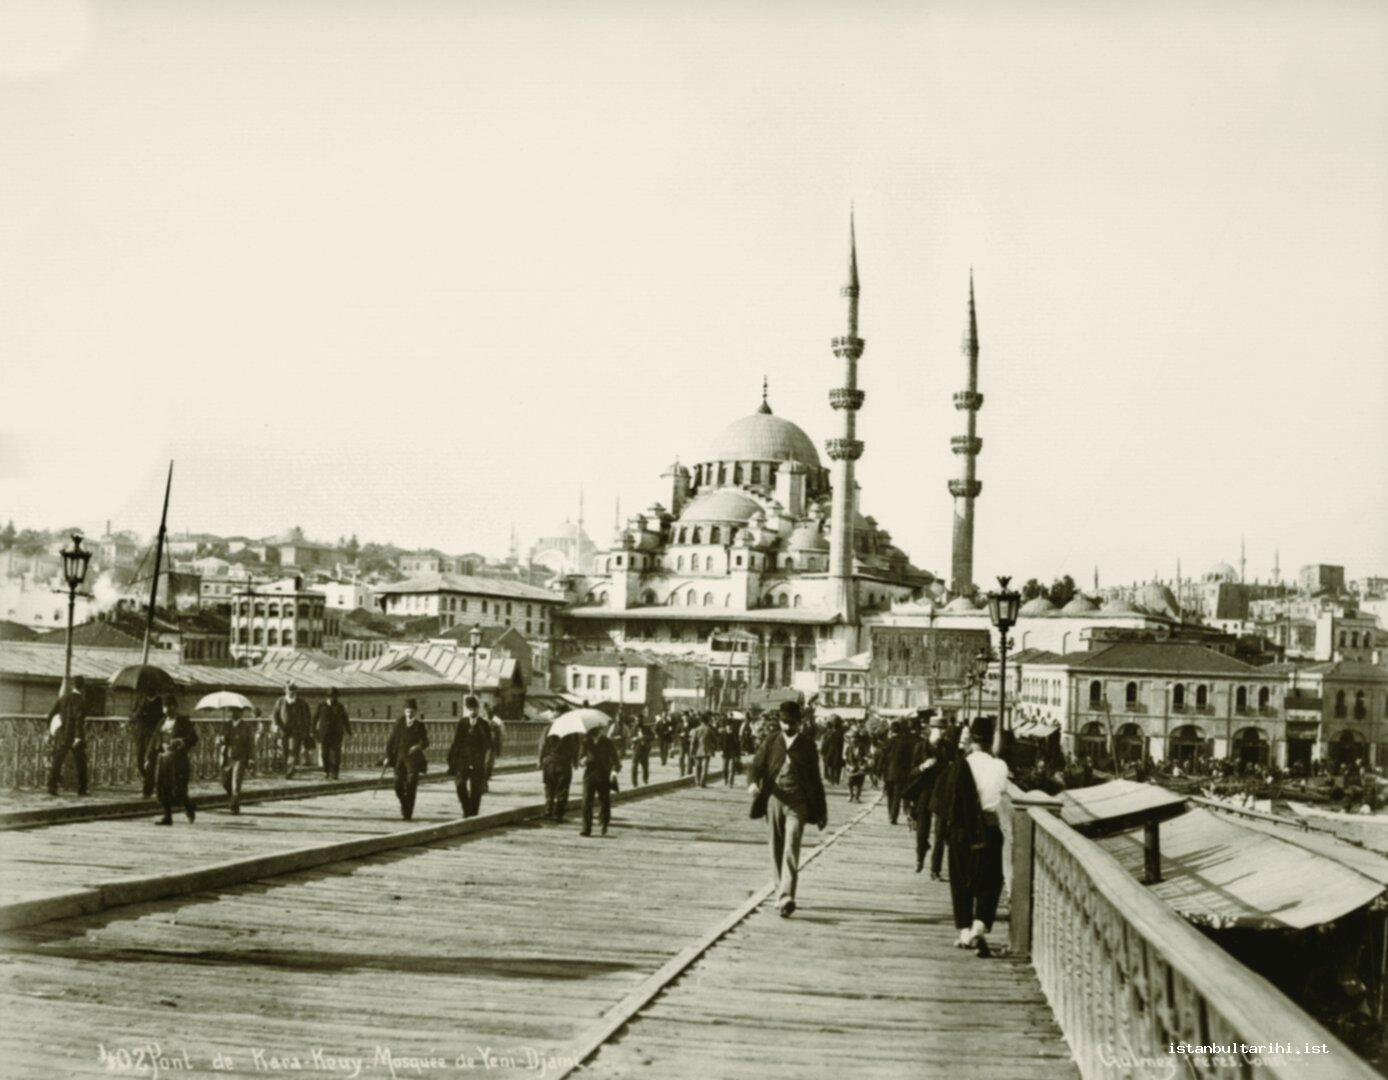 3- The view of New Mosque from Galata Bridge (Yıldız Albums)